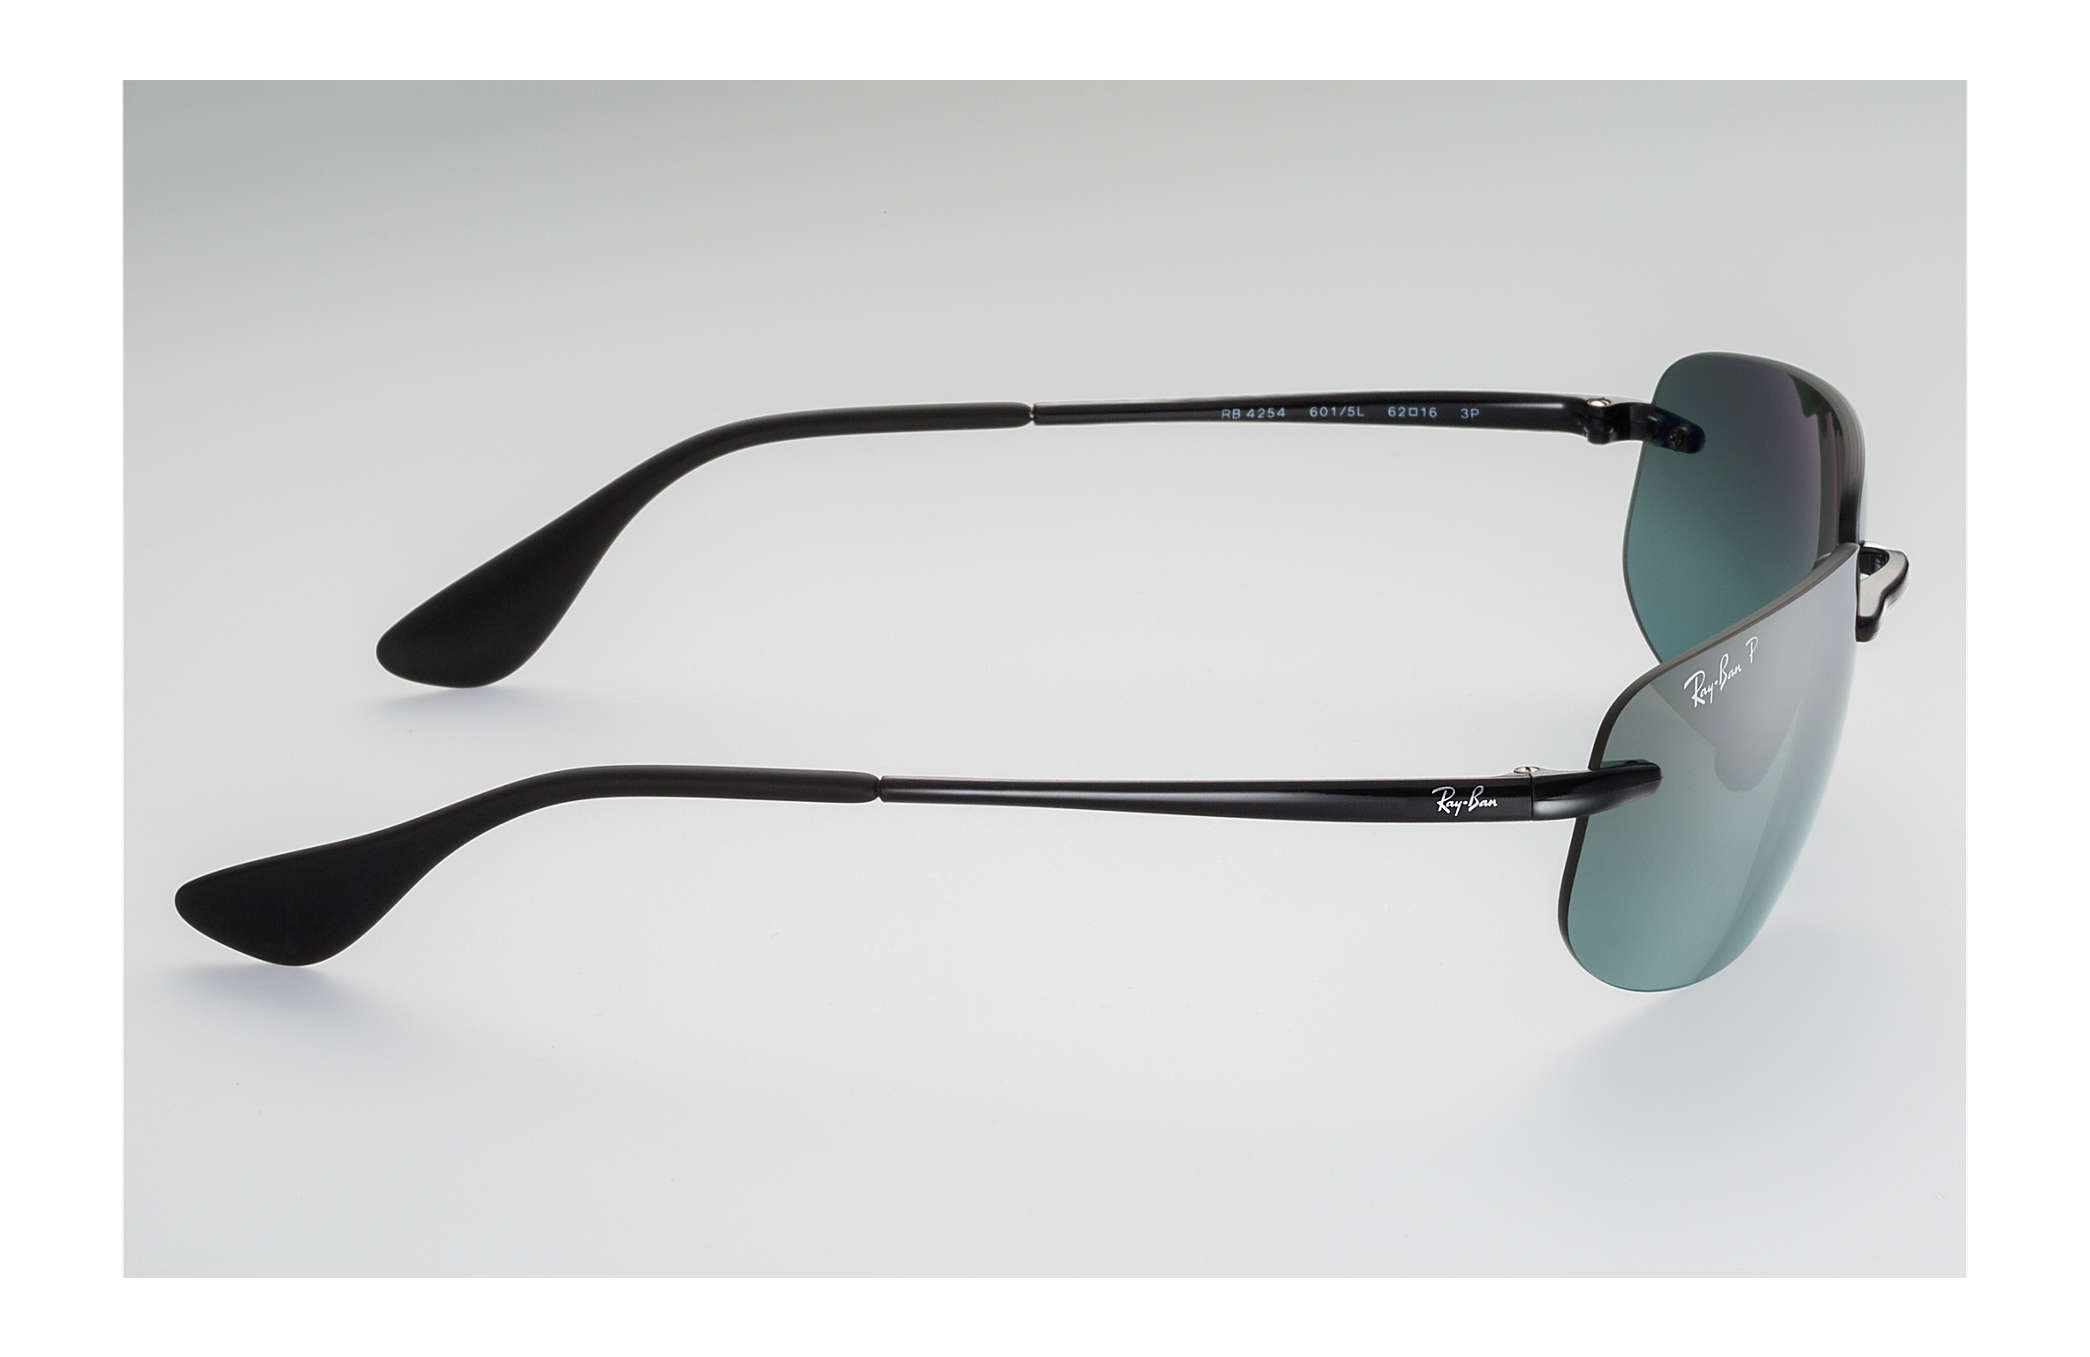 6619af5215 Ray-Ban Rb4254 Chromance RB4254 Black - Injected - Grey Polarized ...